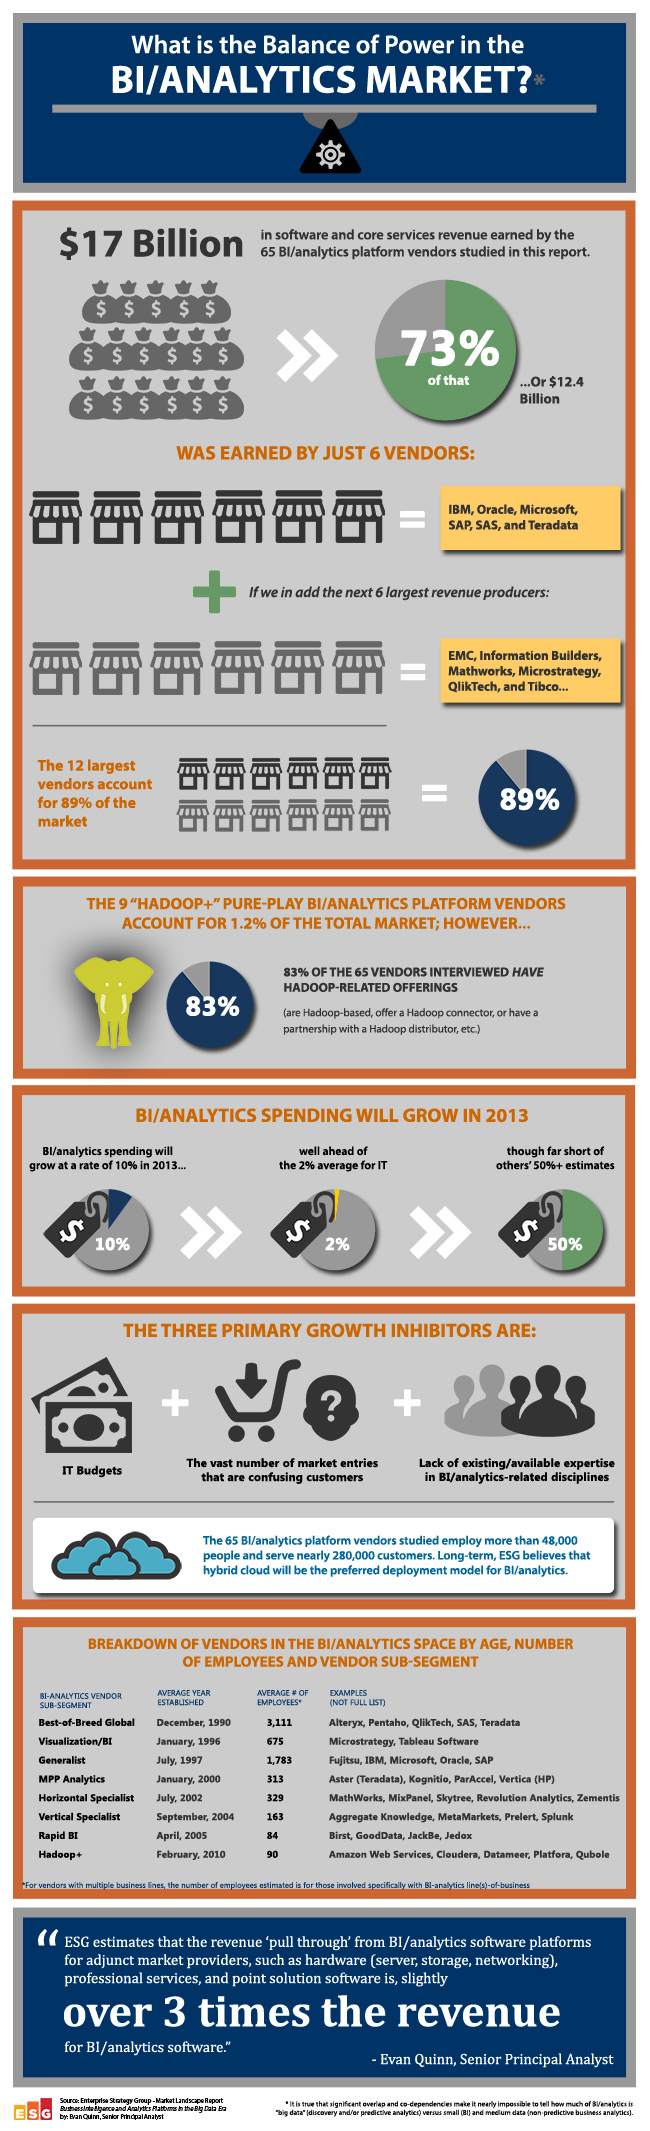 Business Intelligence and Analytics Platforms in the Big Data Era Infographic - ESG Research - Enterprise Strategy Group